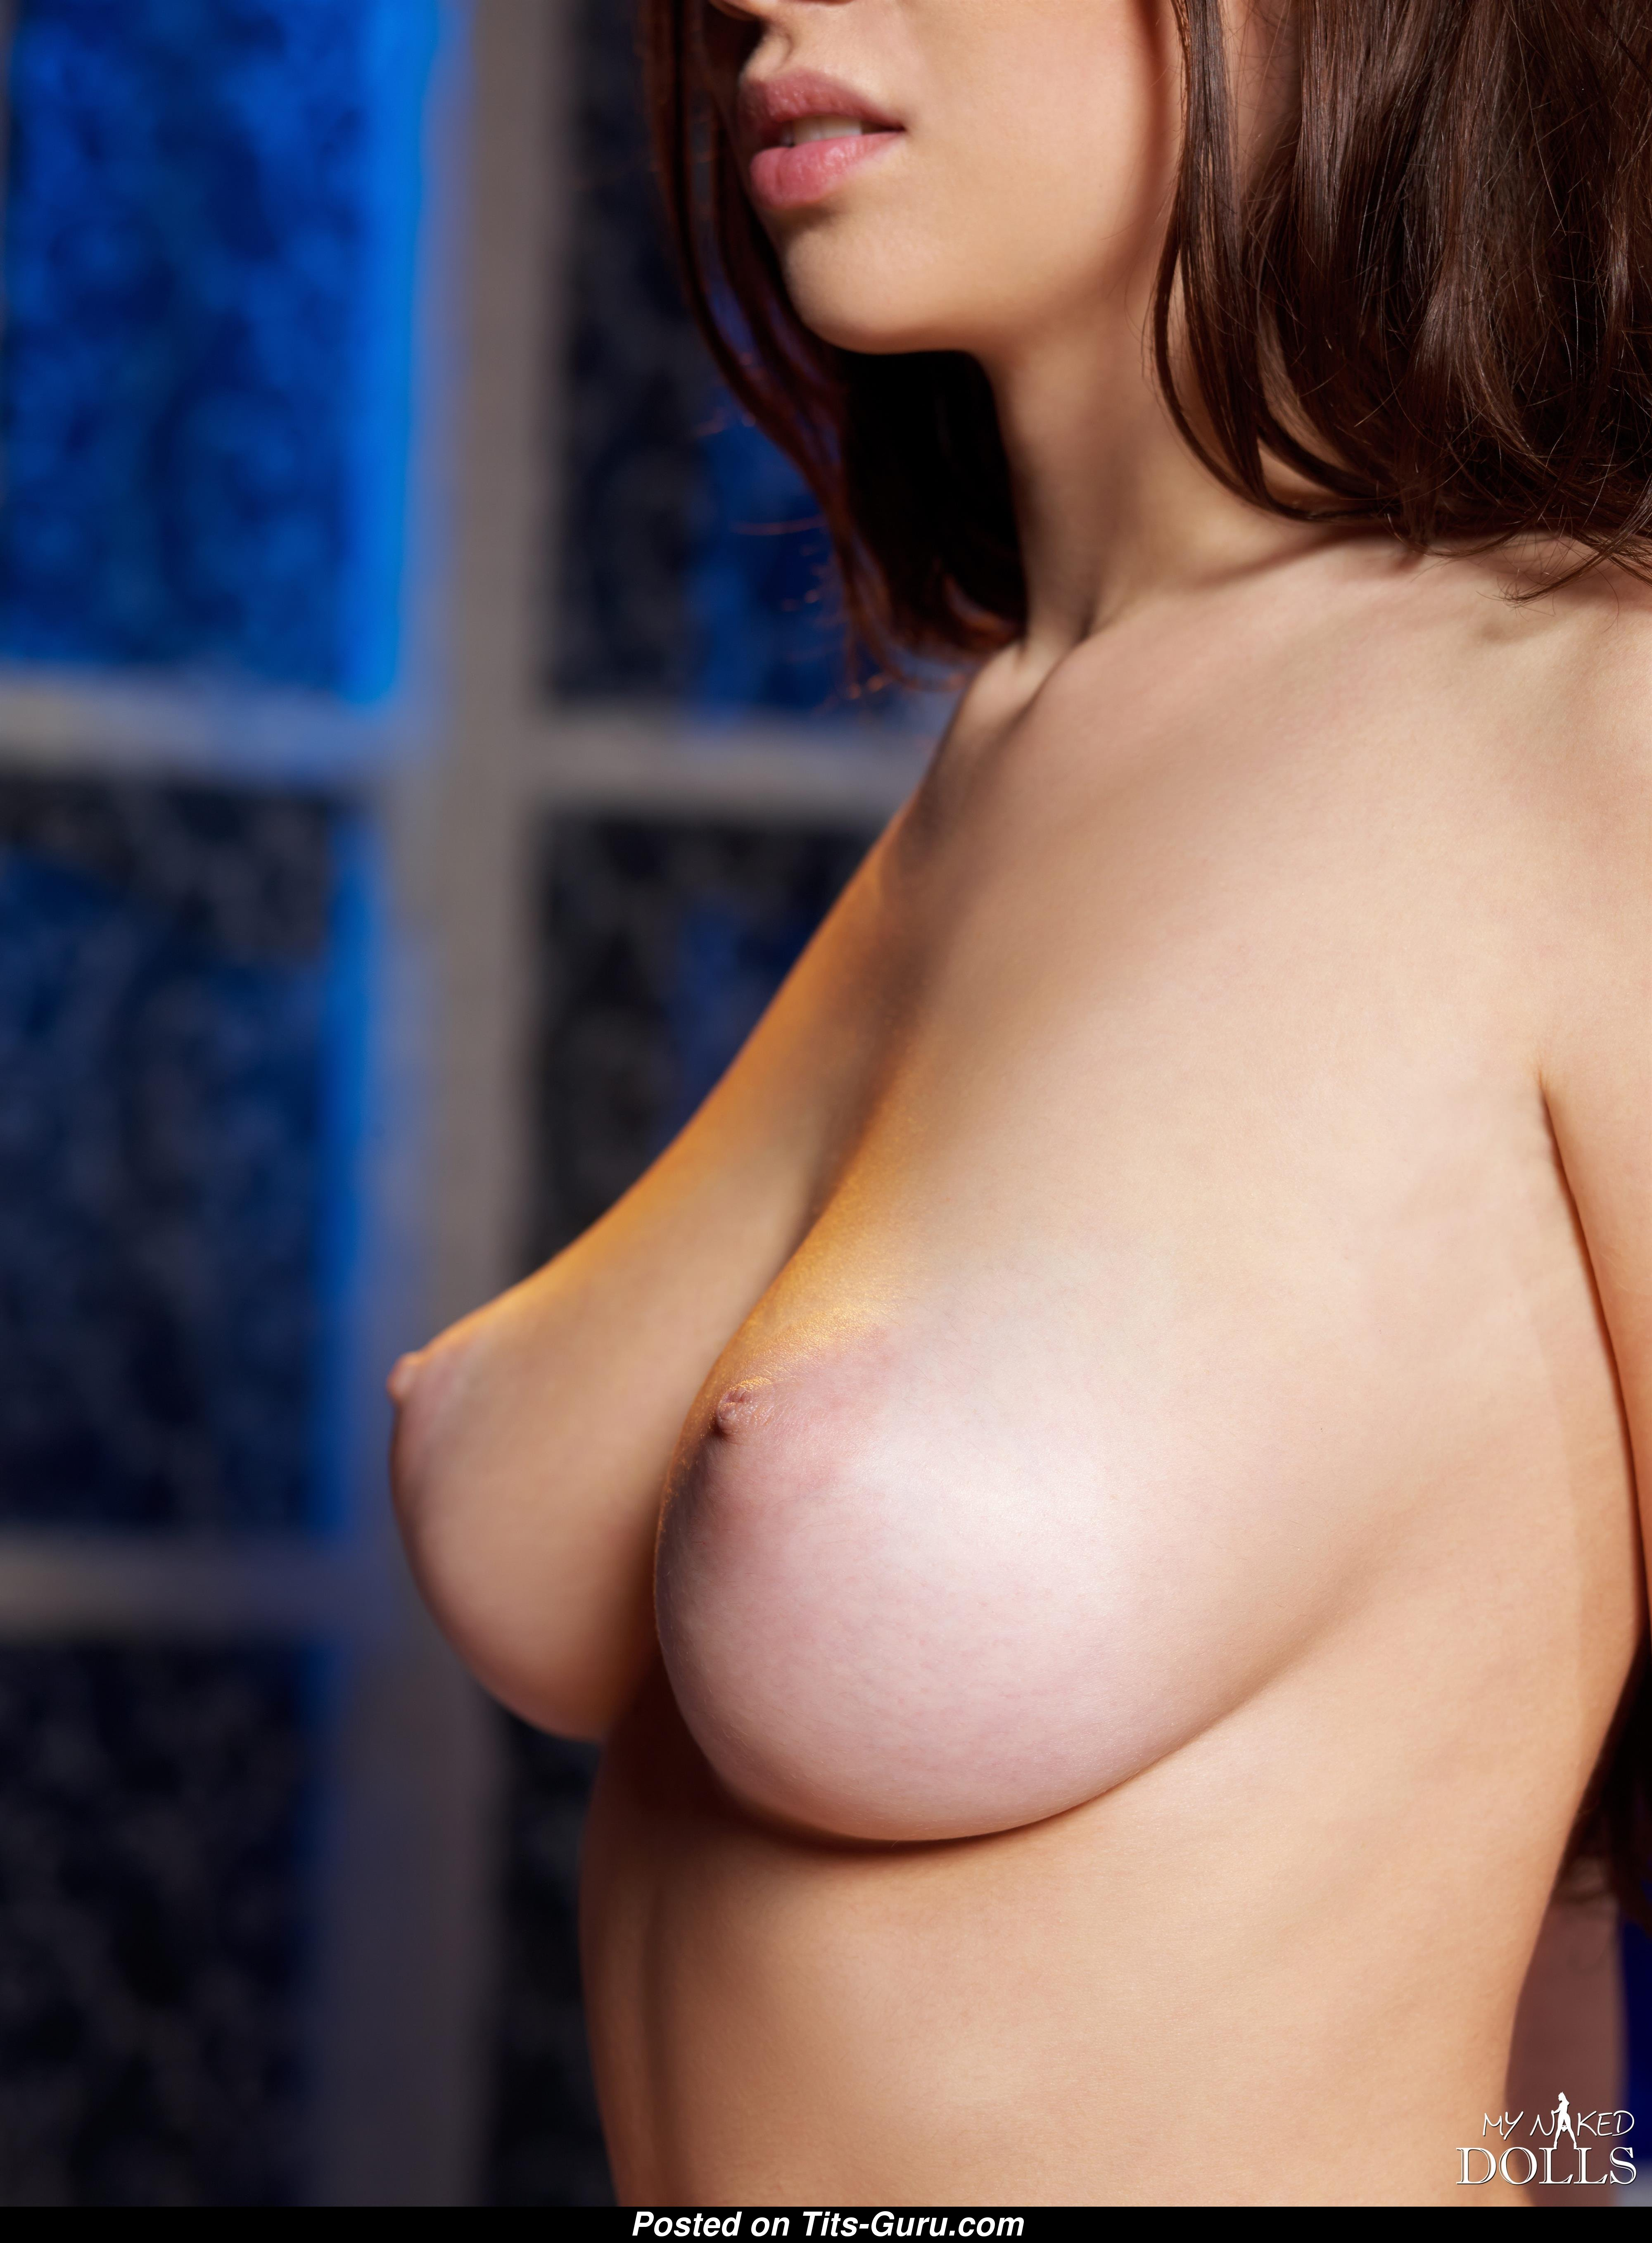 Juliet Curacao - Topless Miss With Naked Real Tight Busts -7679